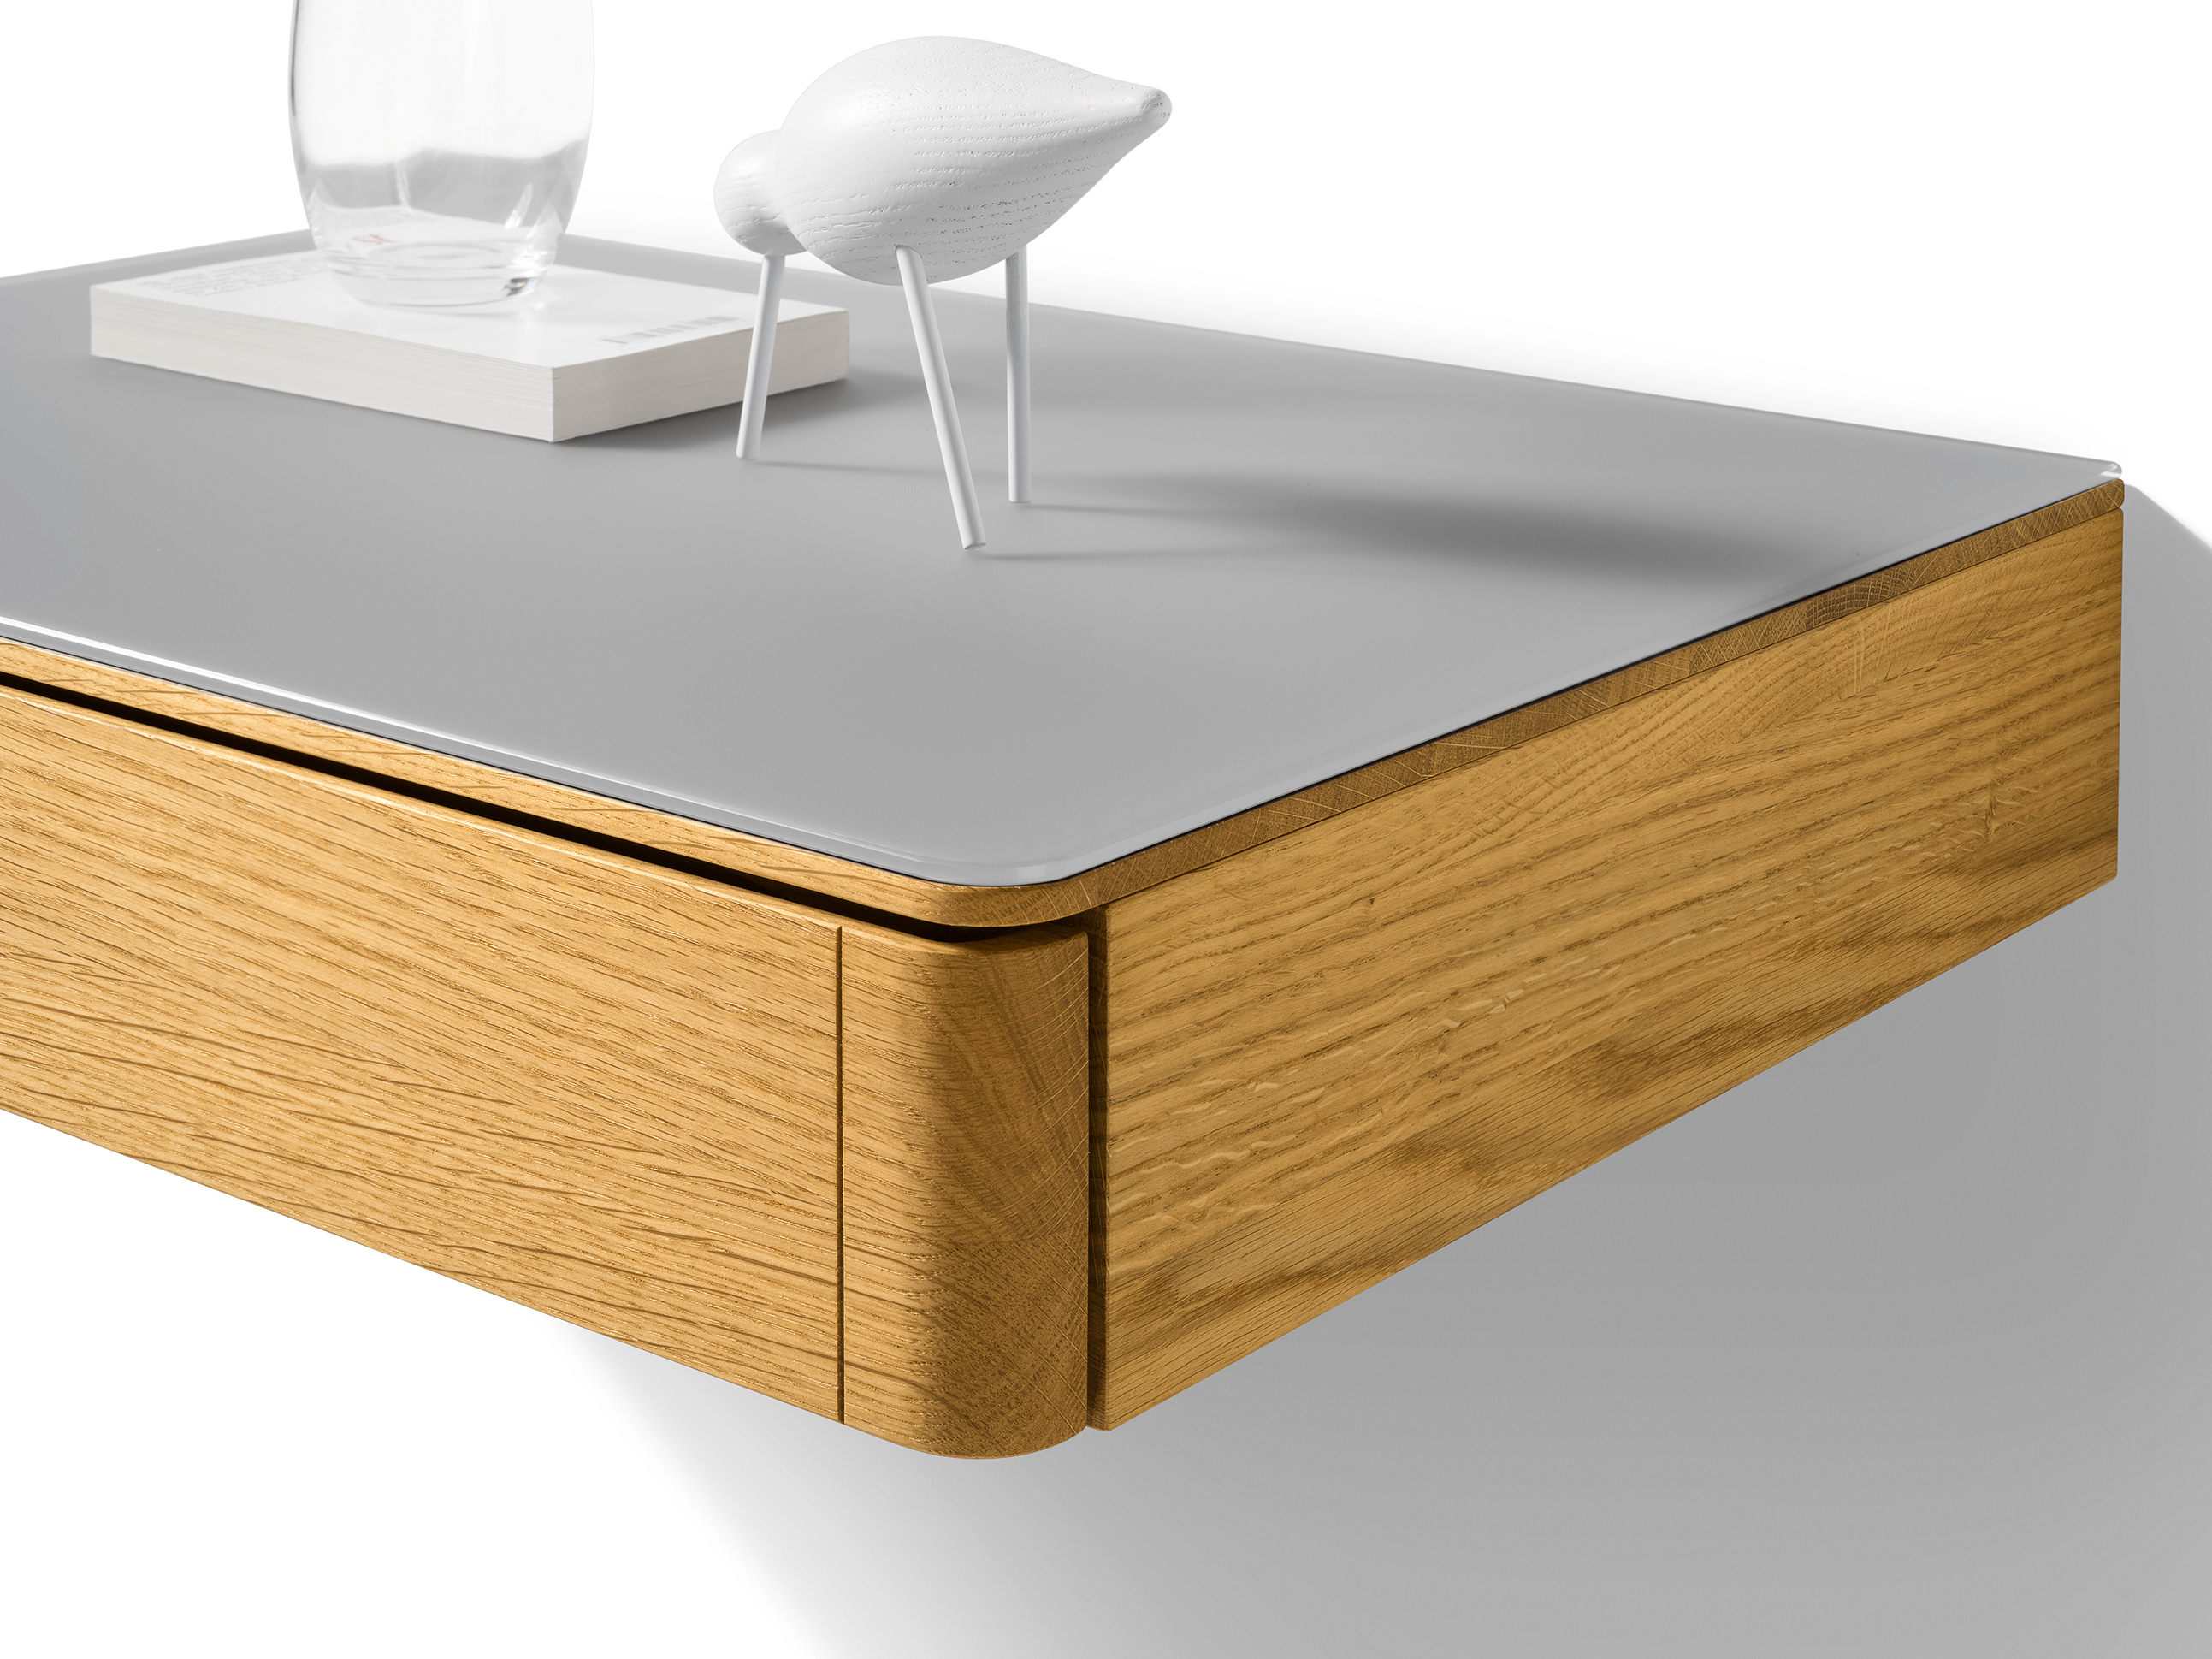 float | wall-mounted bedside table float collectionteam 7